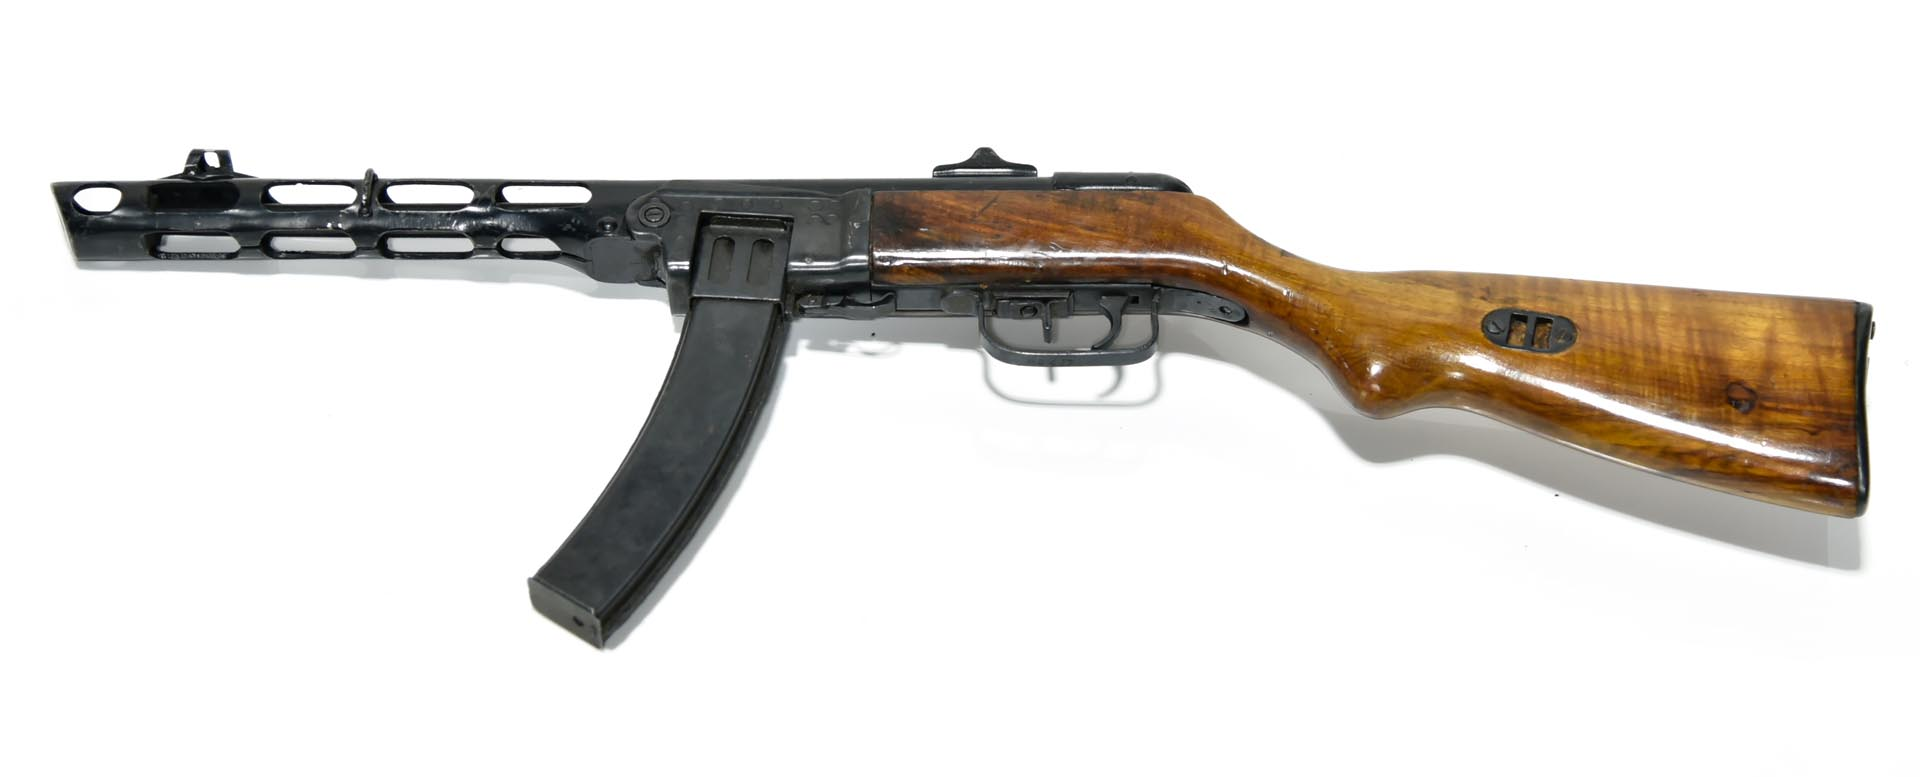 Original WWII Soviet PPSh-41 Submachine Gun